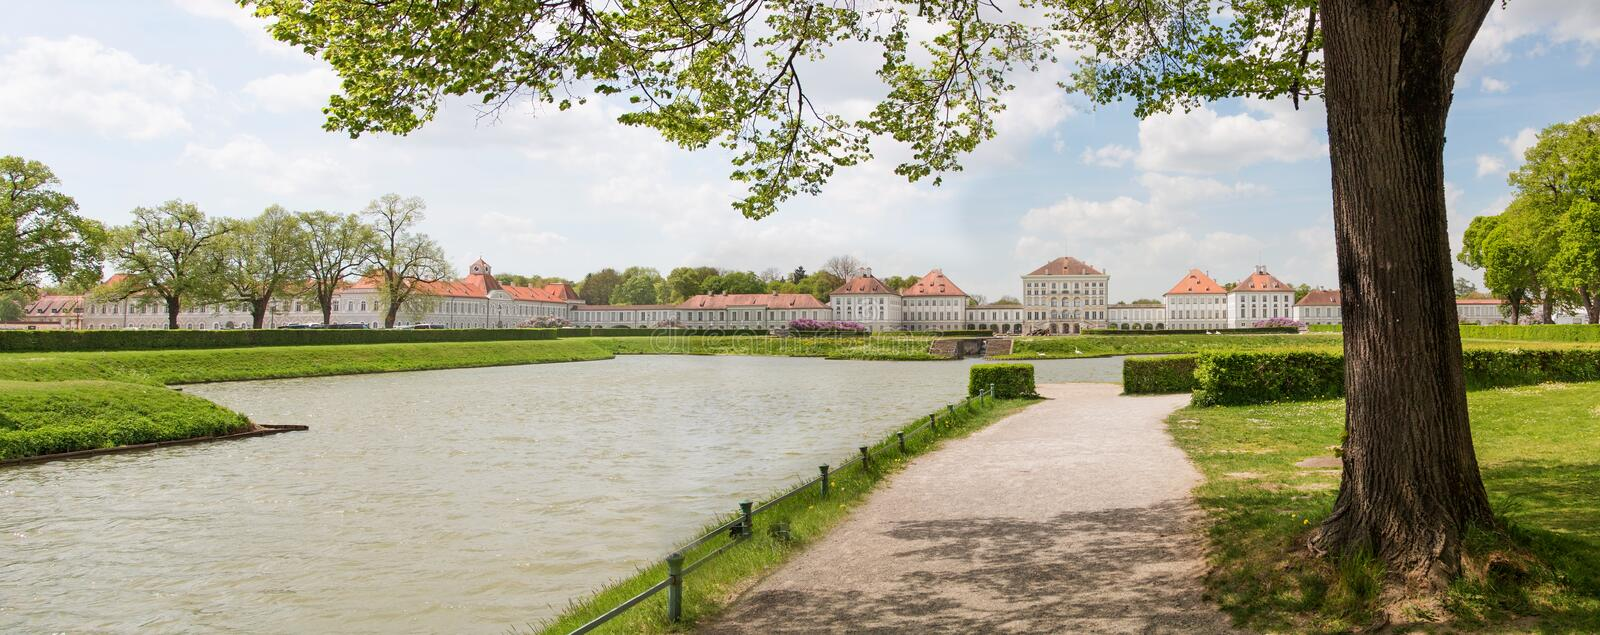 MUNICH, GERMANY - APRIL 25, 2018: Front side of Nymphenburg Palace (Schloss Nymphenburg) royalty free stock photos